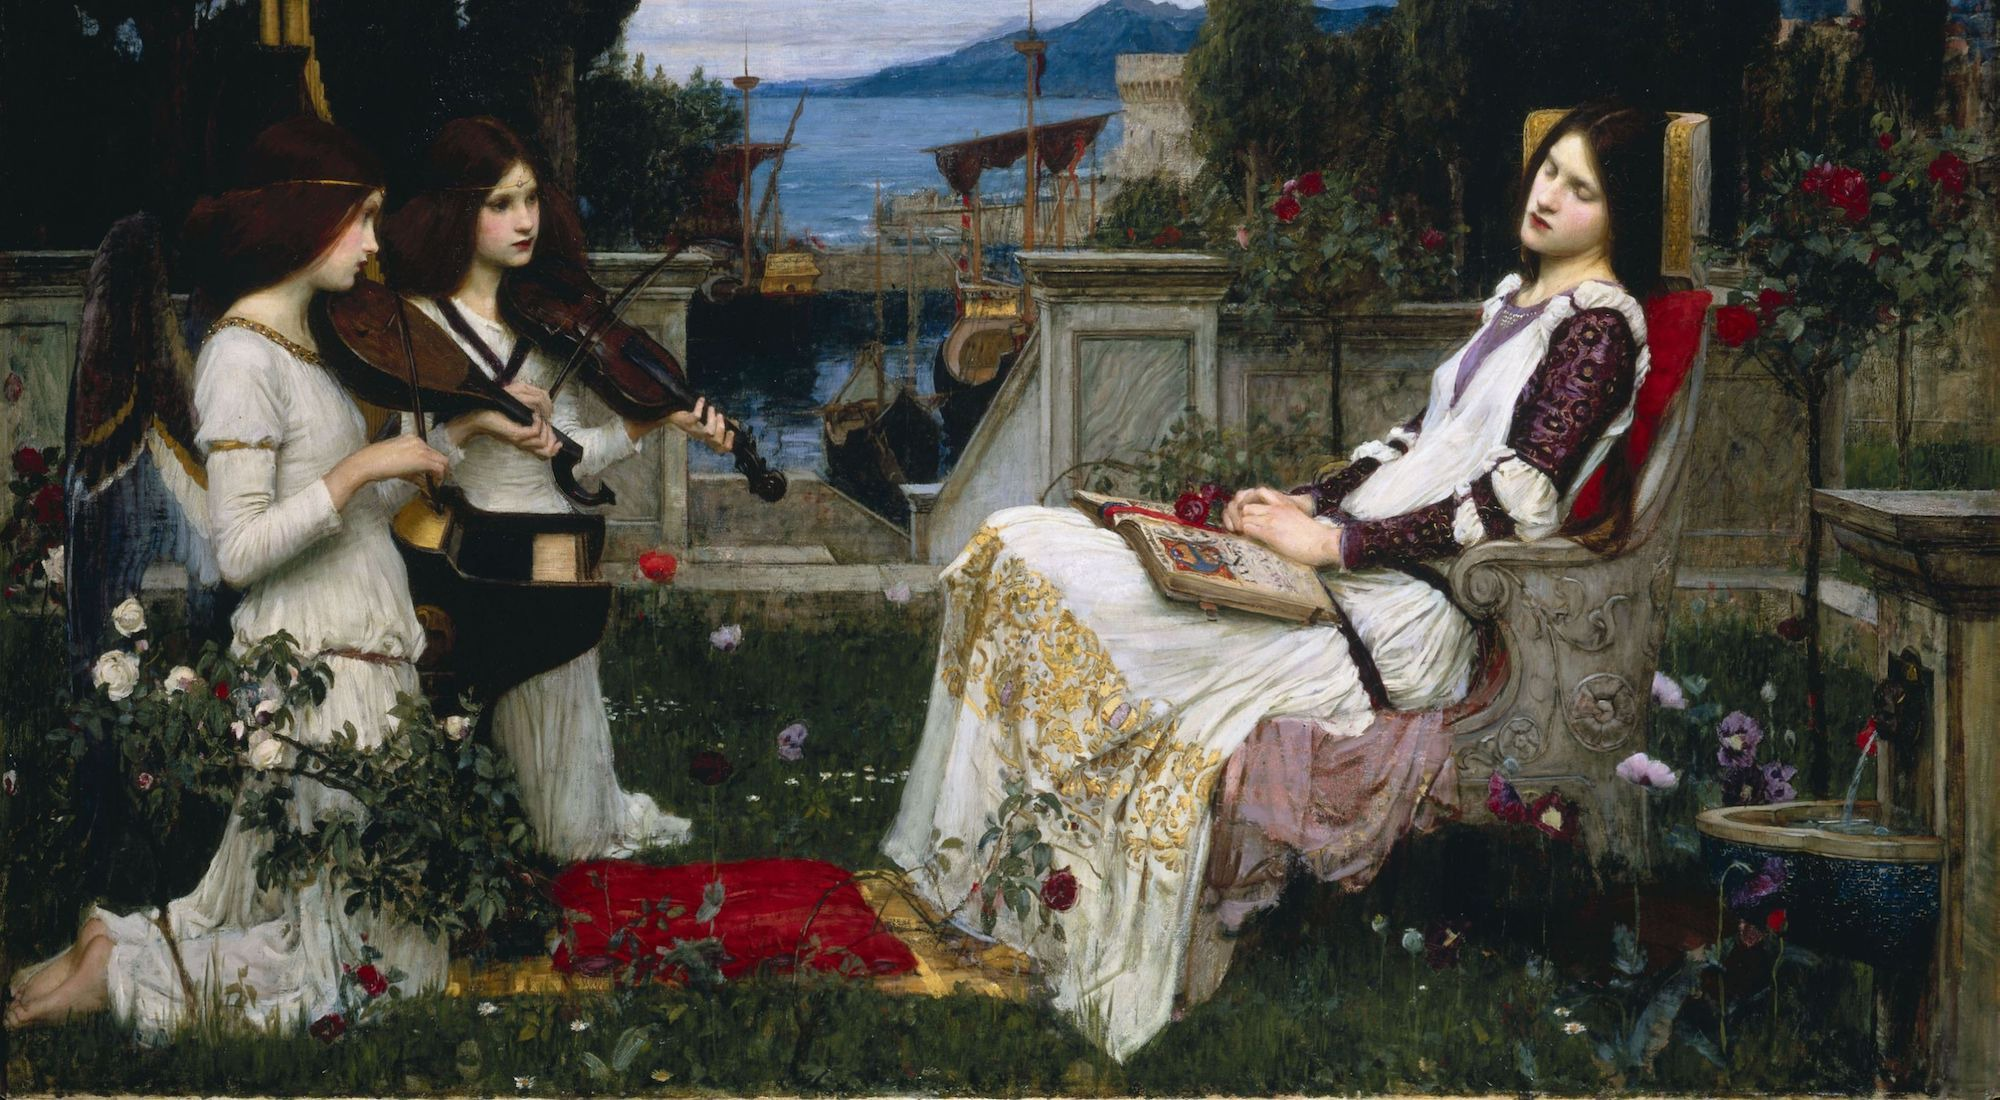 Original john william waterhouse 01